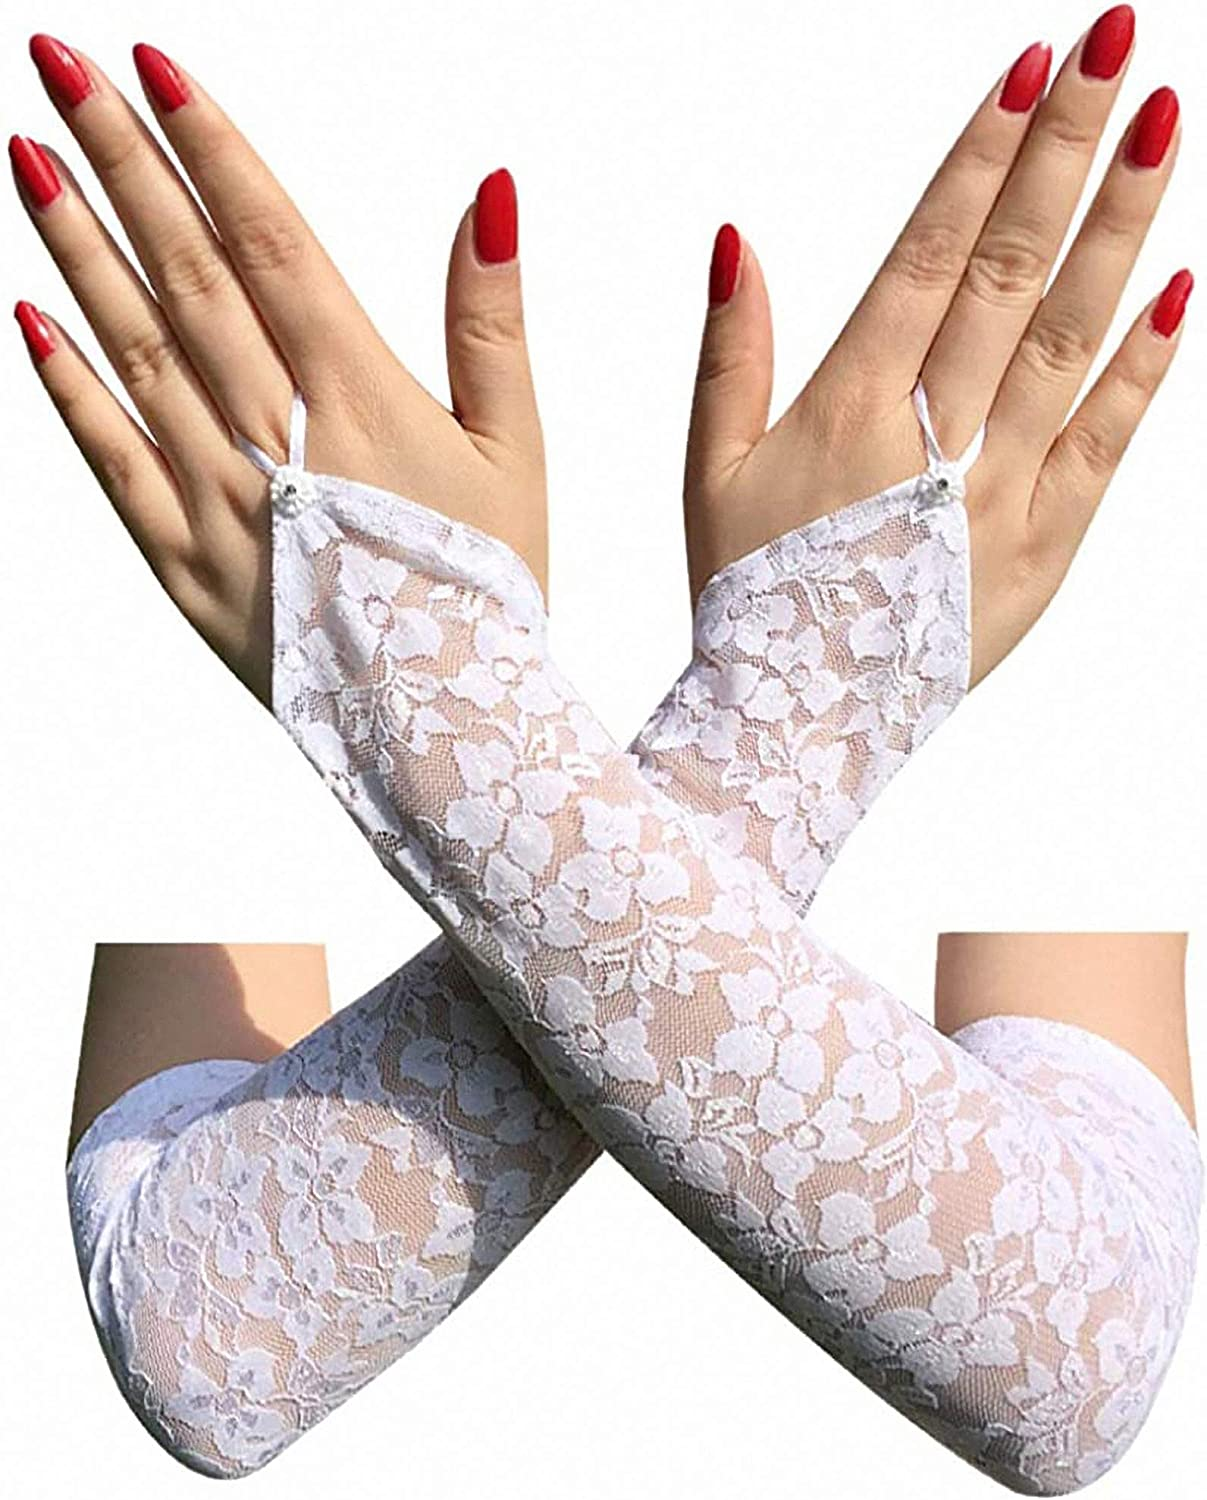 Cosplay 20s Accessories White Fingerless Lace Gloves for Women Elbow Length Long Gloves